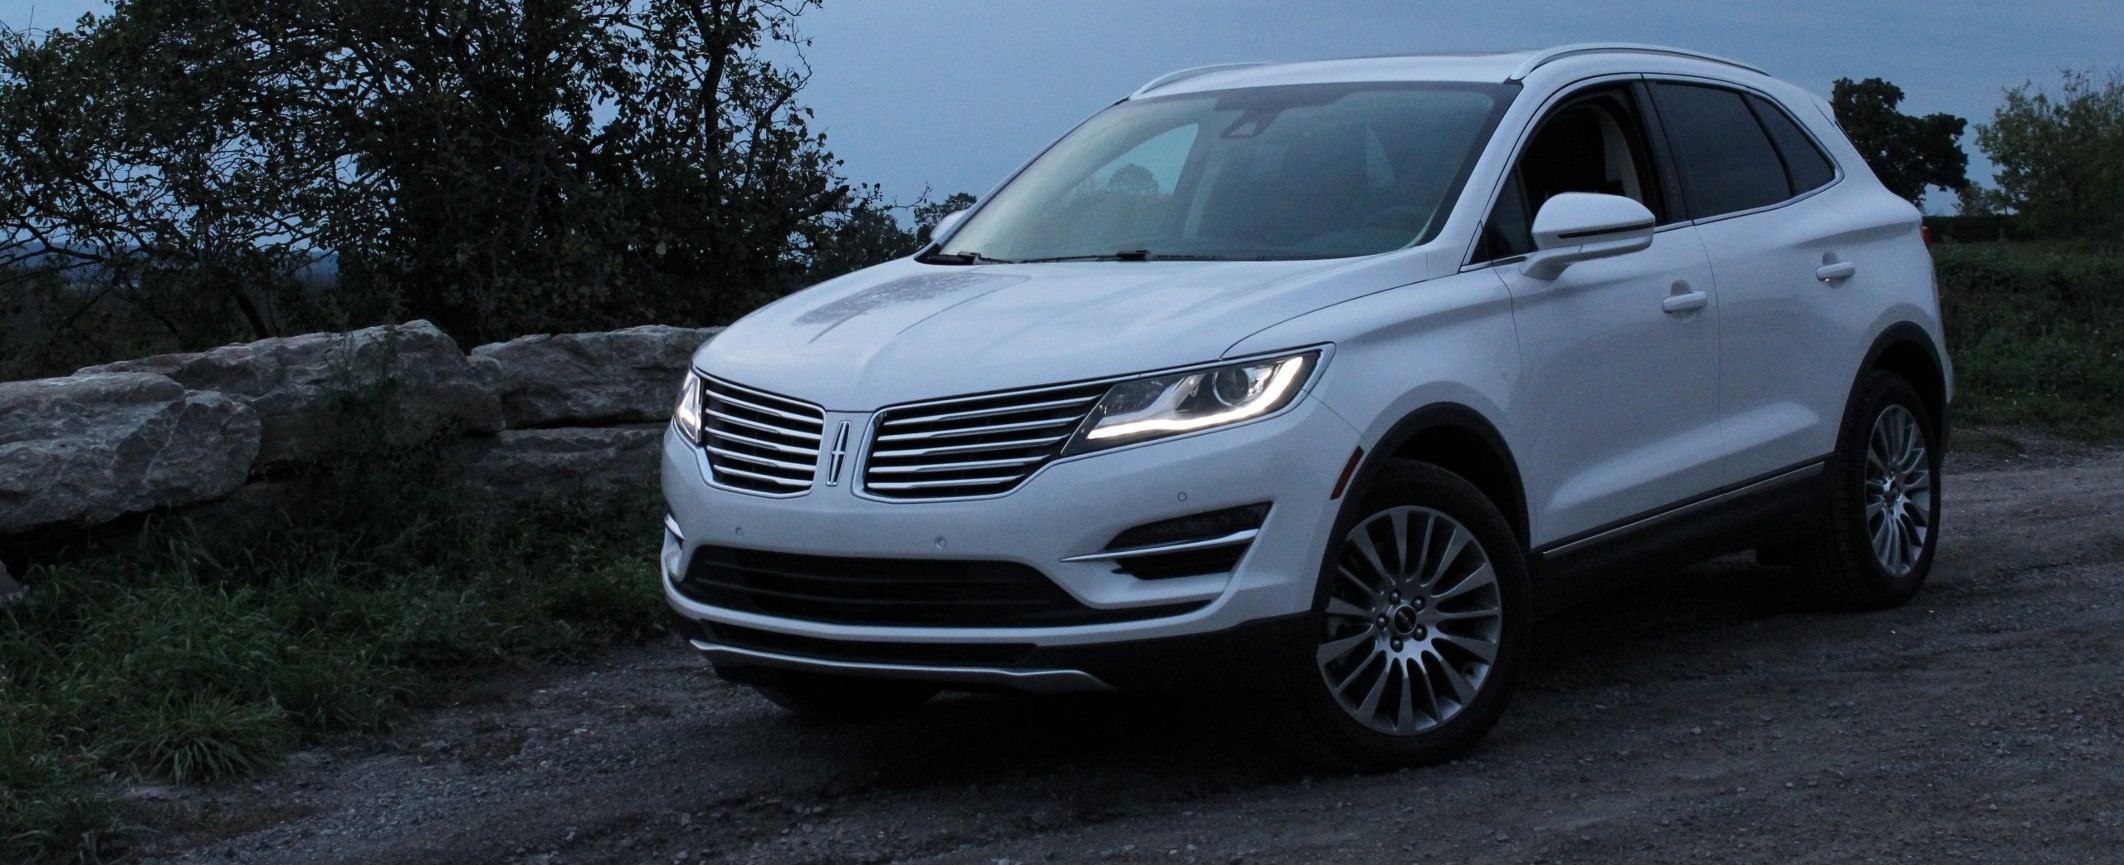 Look over here! With the MKC, Lincoln is looking to attract a new generation of buyers, without alienating their customer base.